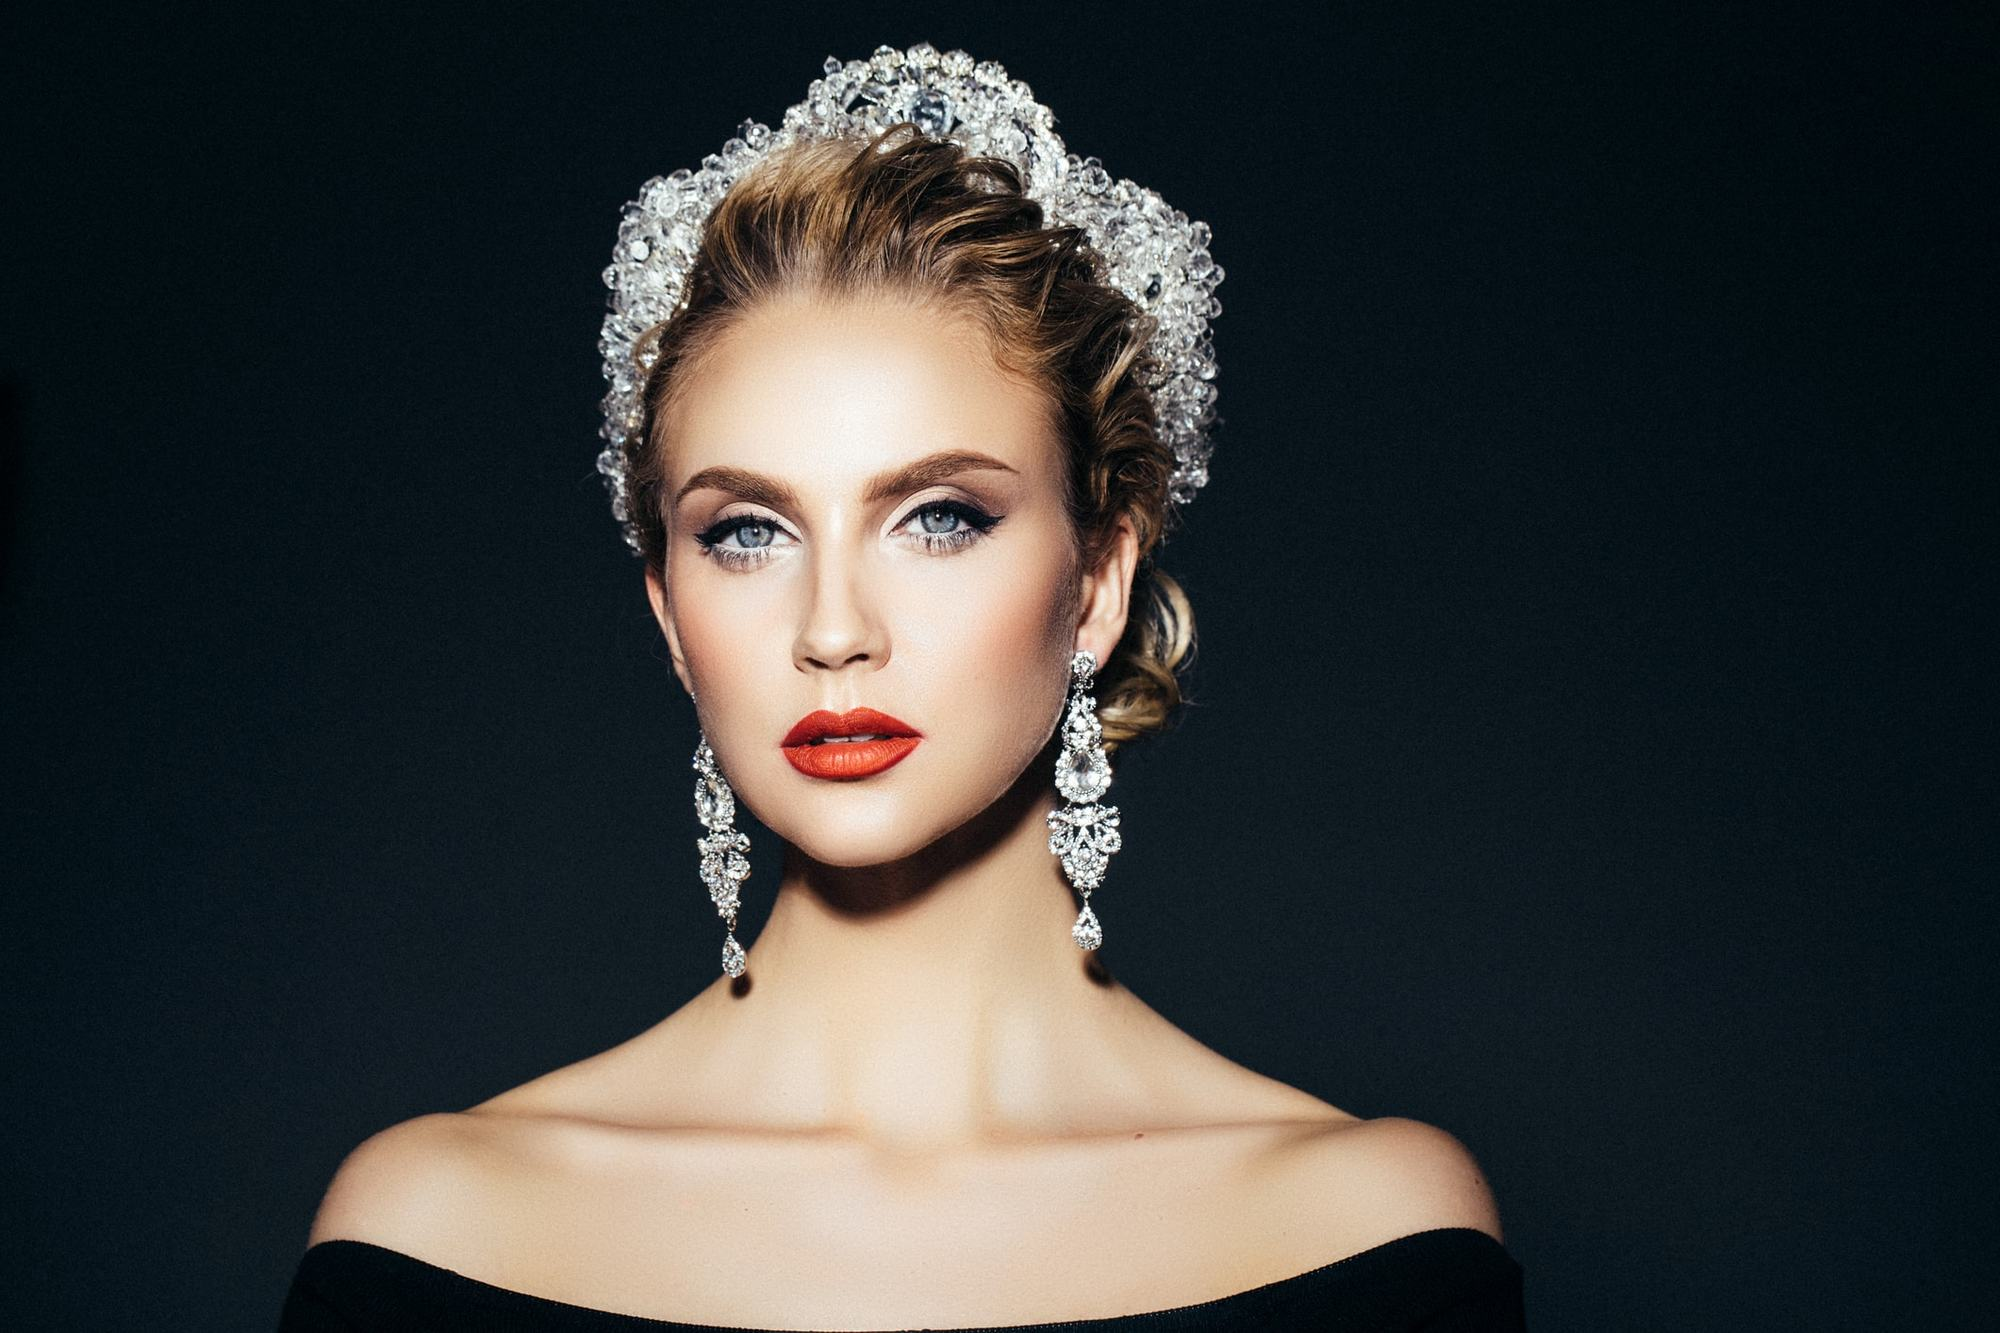 hairstyles with tiara crystal beads low updo